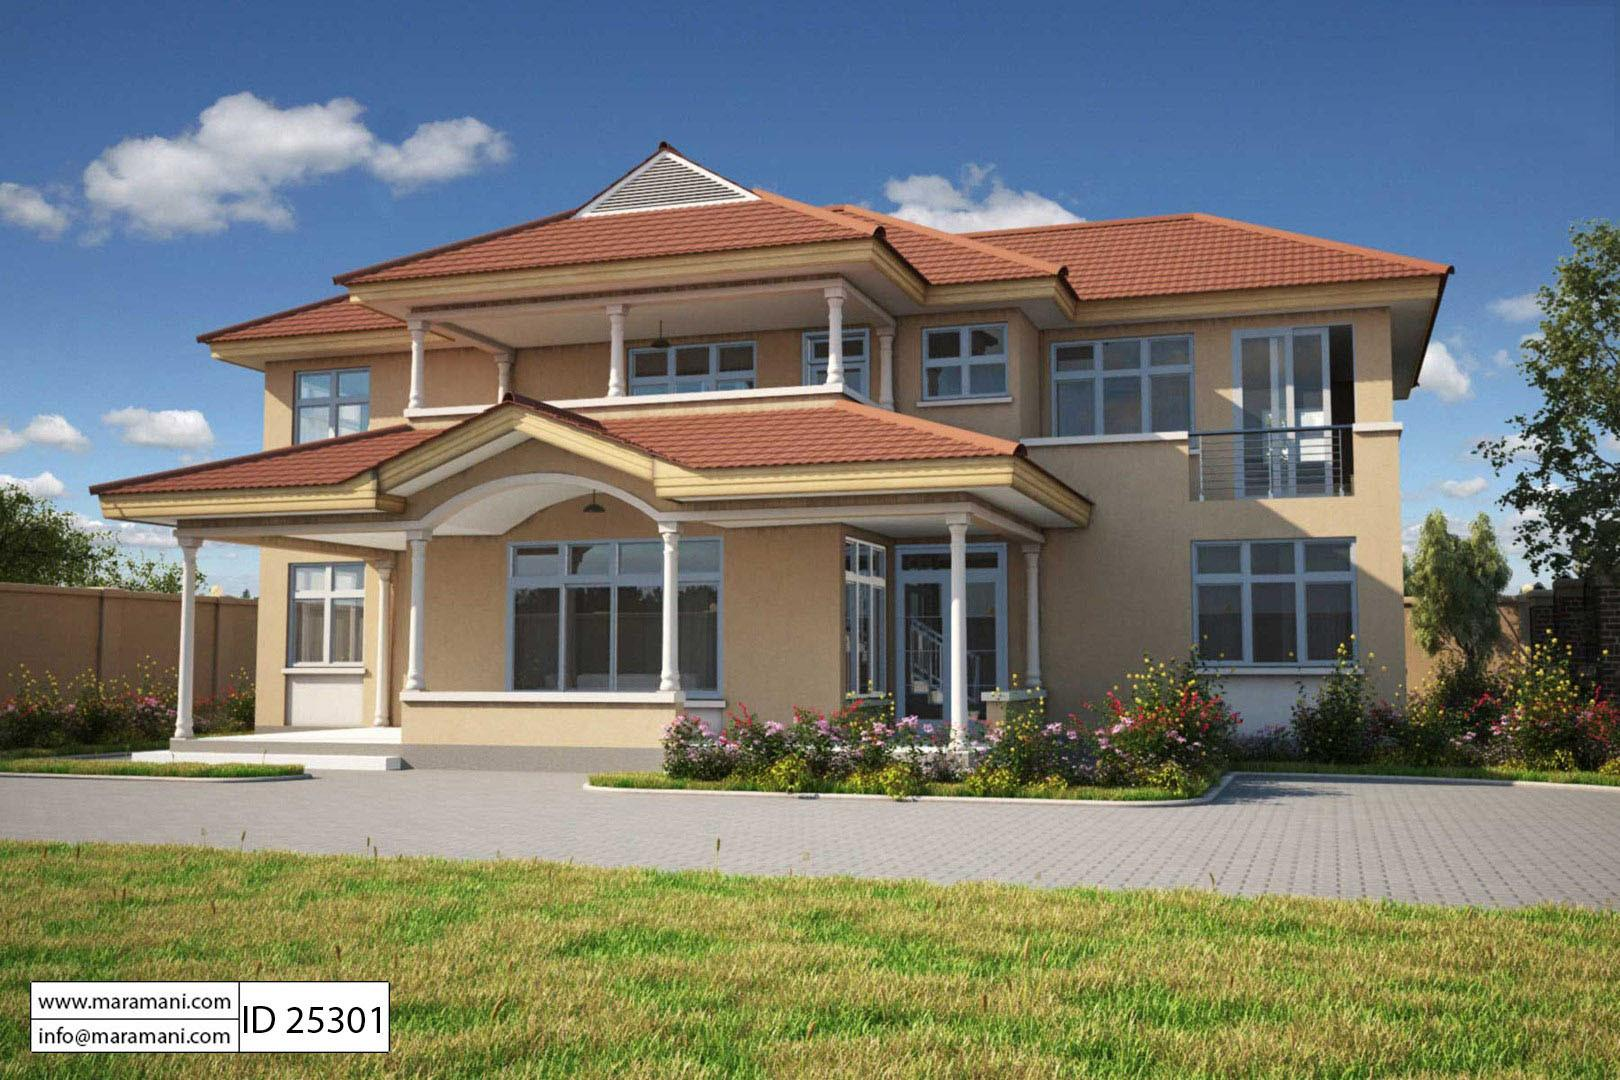 5 bedroom house plan 2 story id 25301 house plans by for Five bedroom house